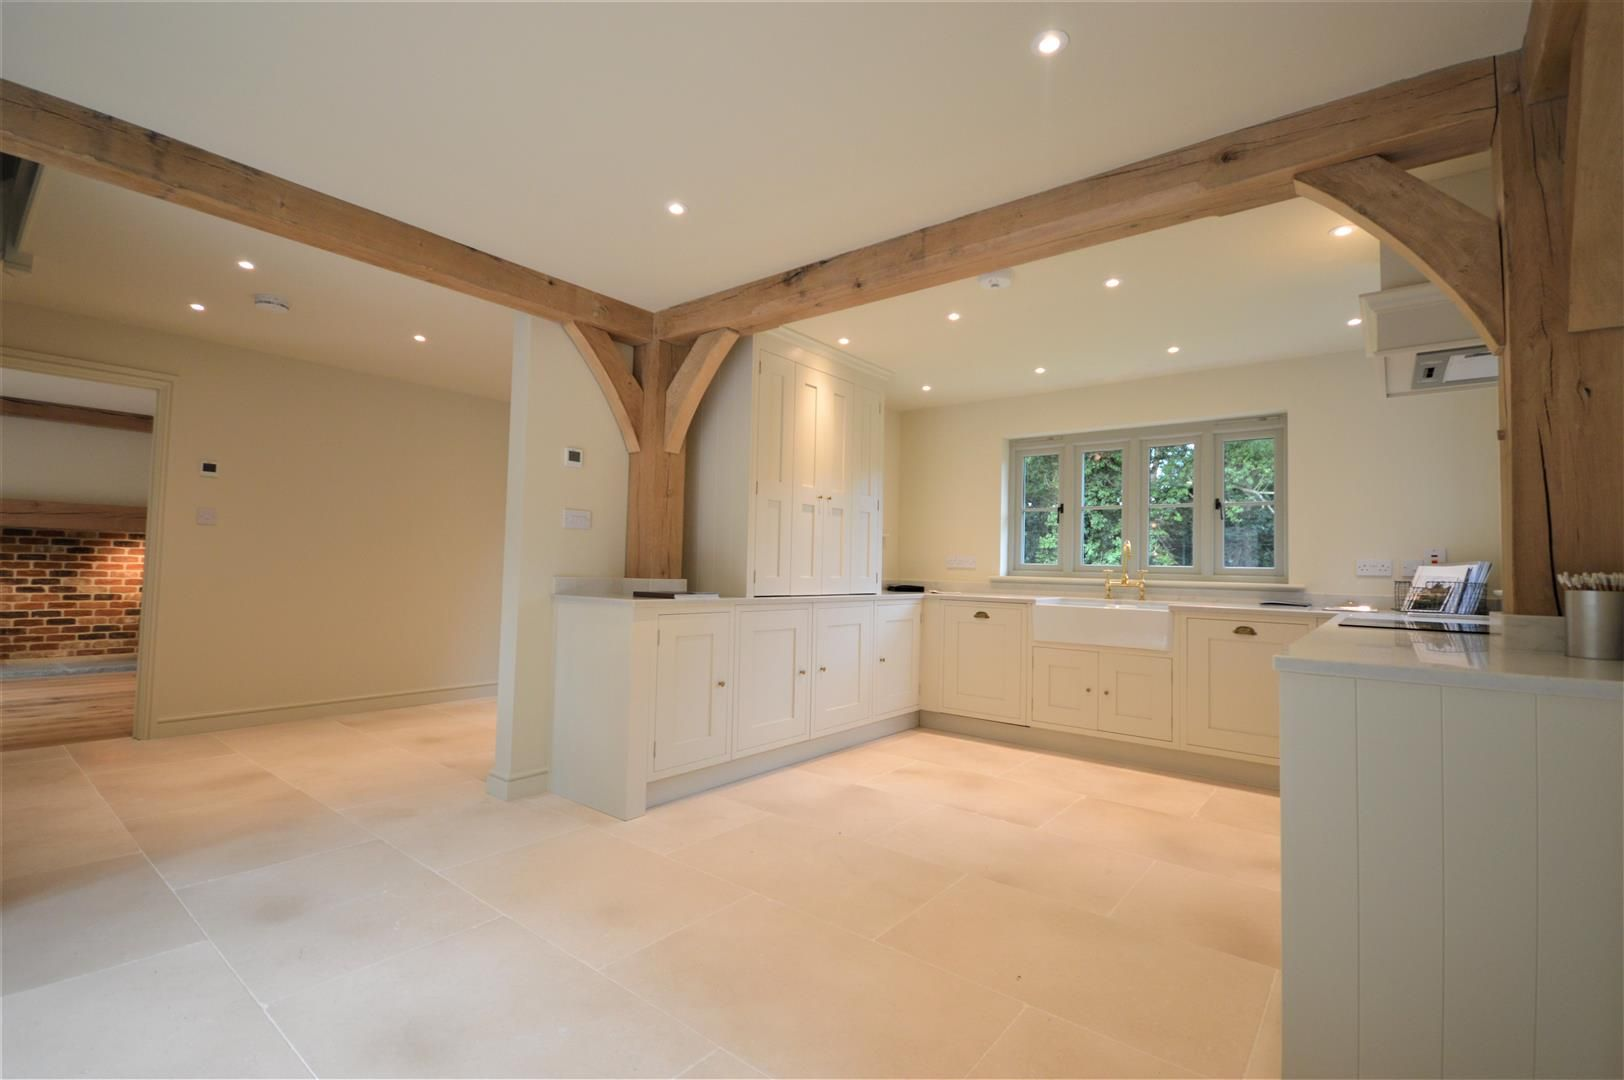 3 bed detached for sale in Dilwyn 3